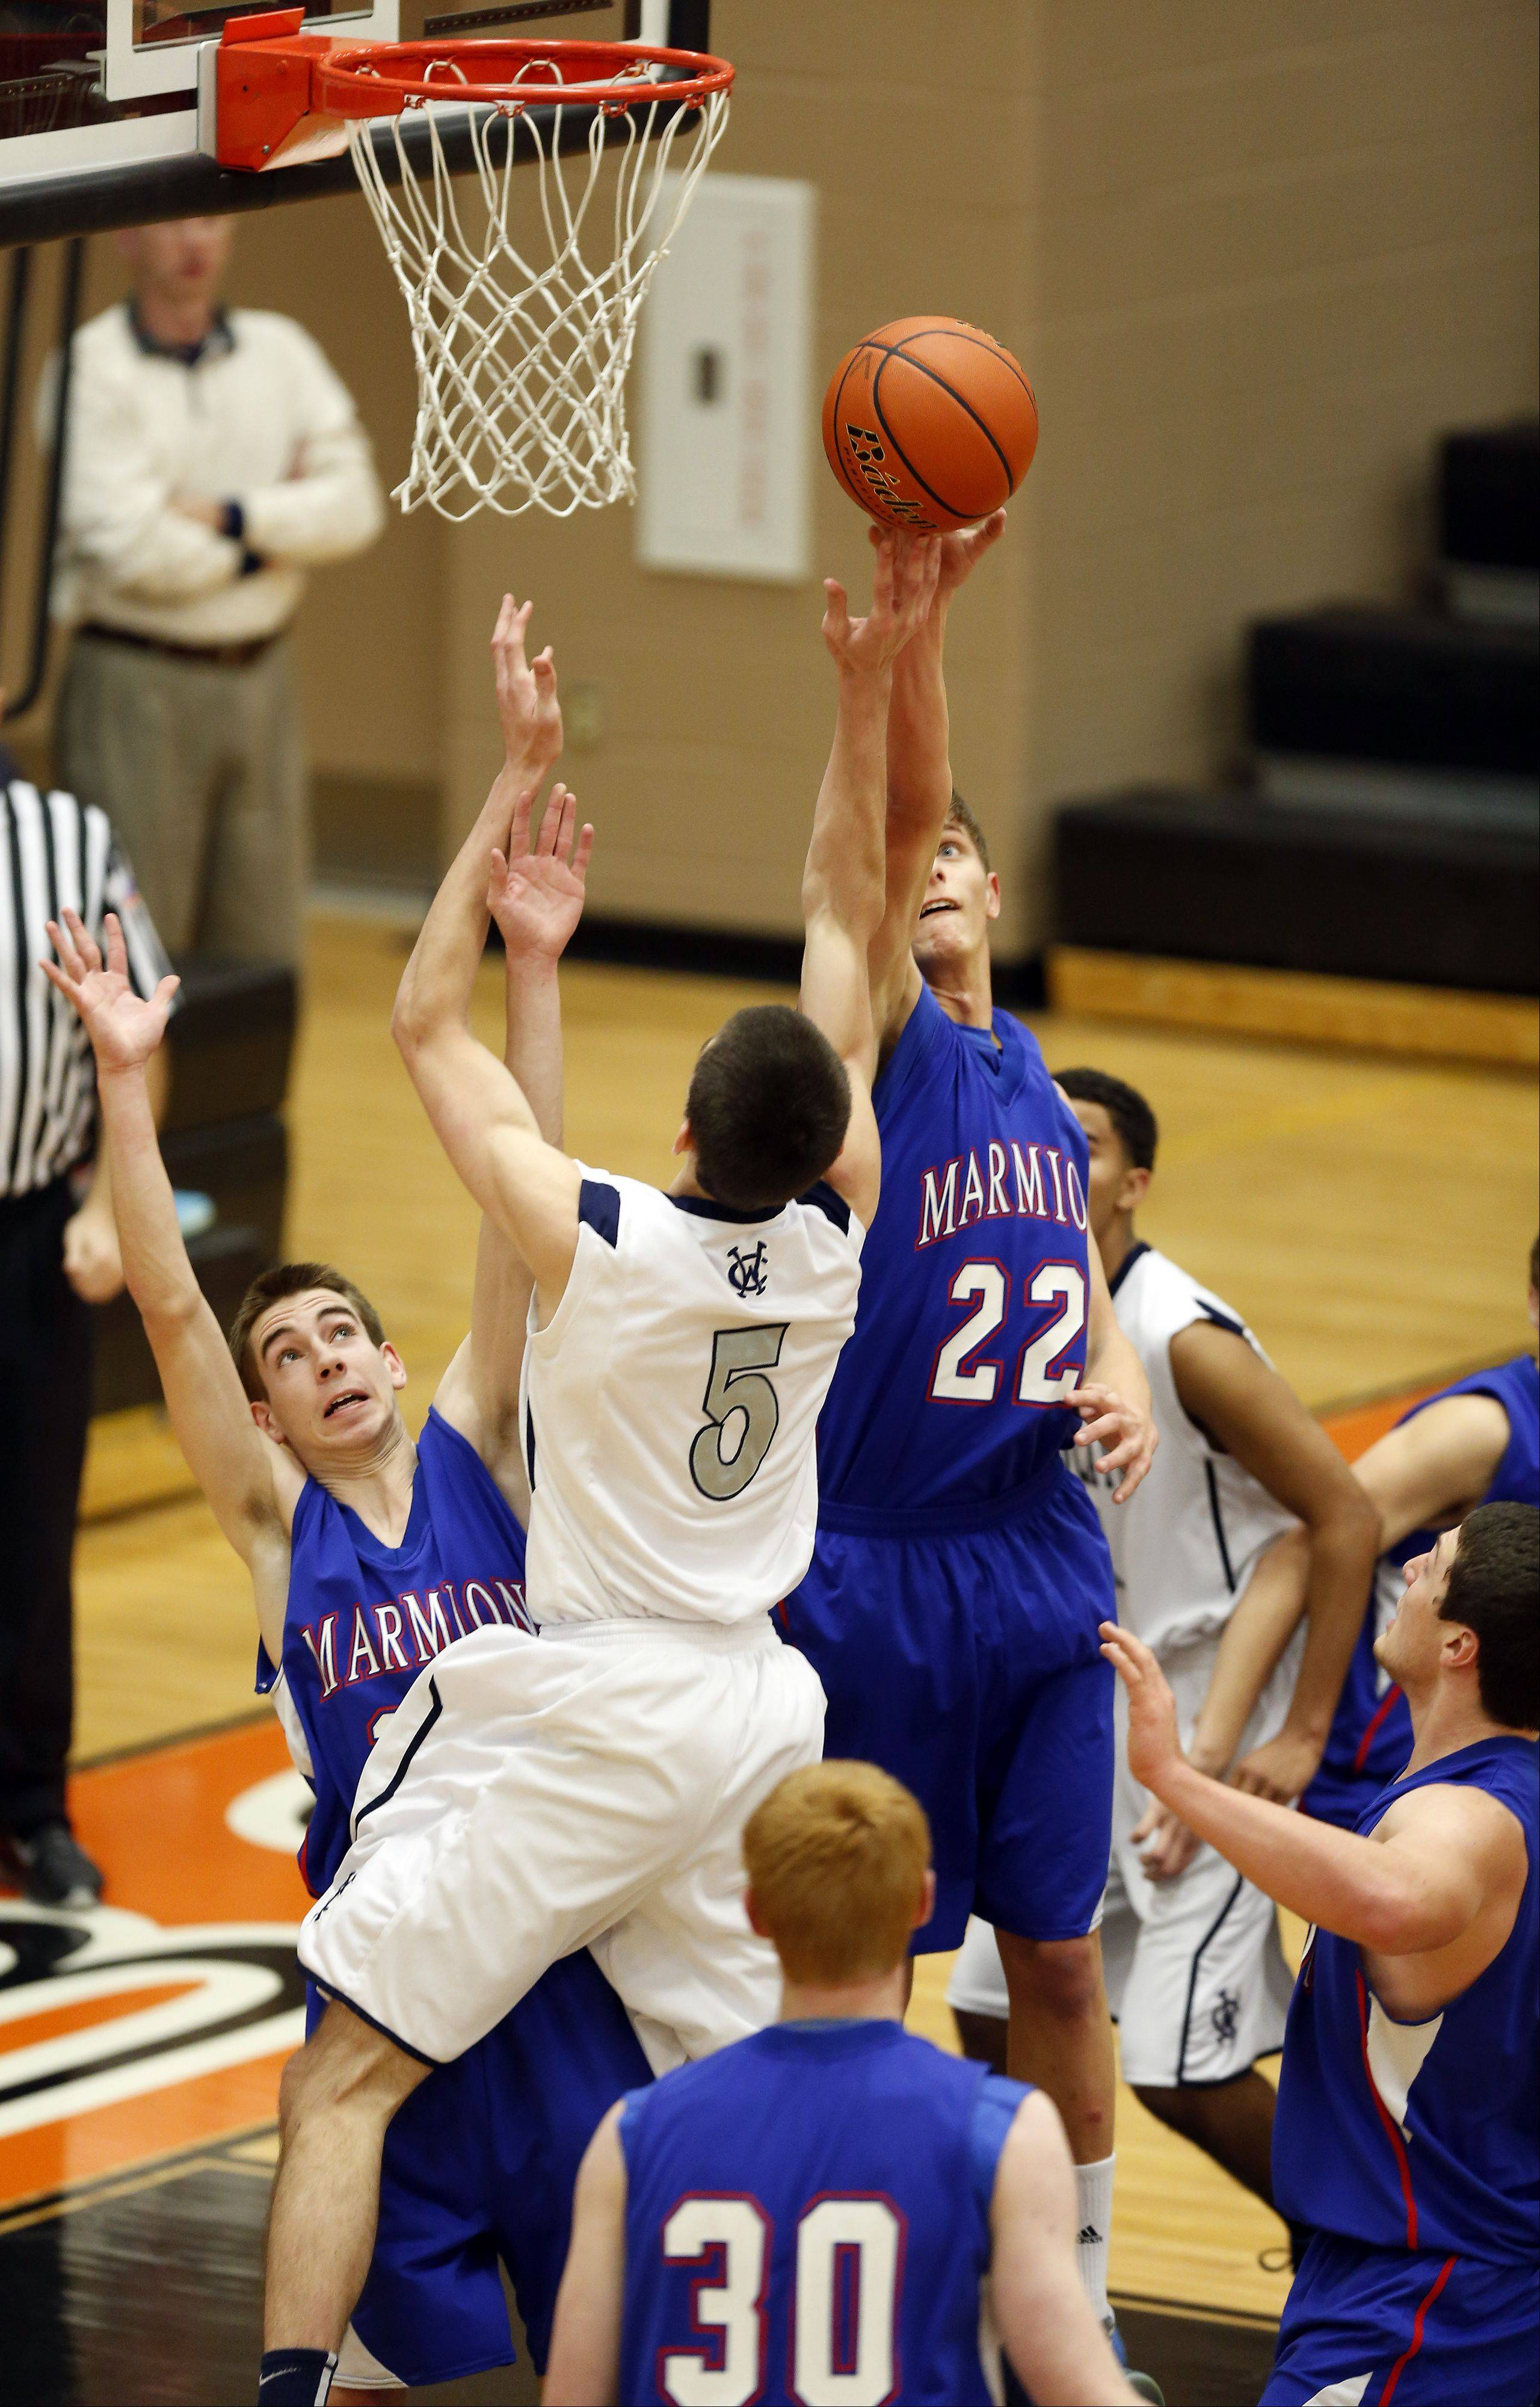 Marmion's Jake Esp, 22, knocks a shot away from West Chicago's John Konchar, 5, during the third place game at the 86th Annual Chuck Dayton Holiday Basketball Tournament at Dekalb High School Friday December 27, 2013.